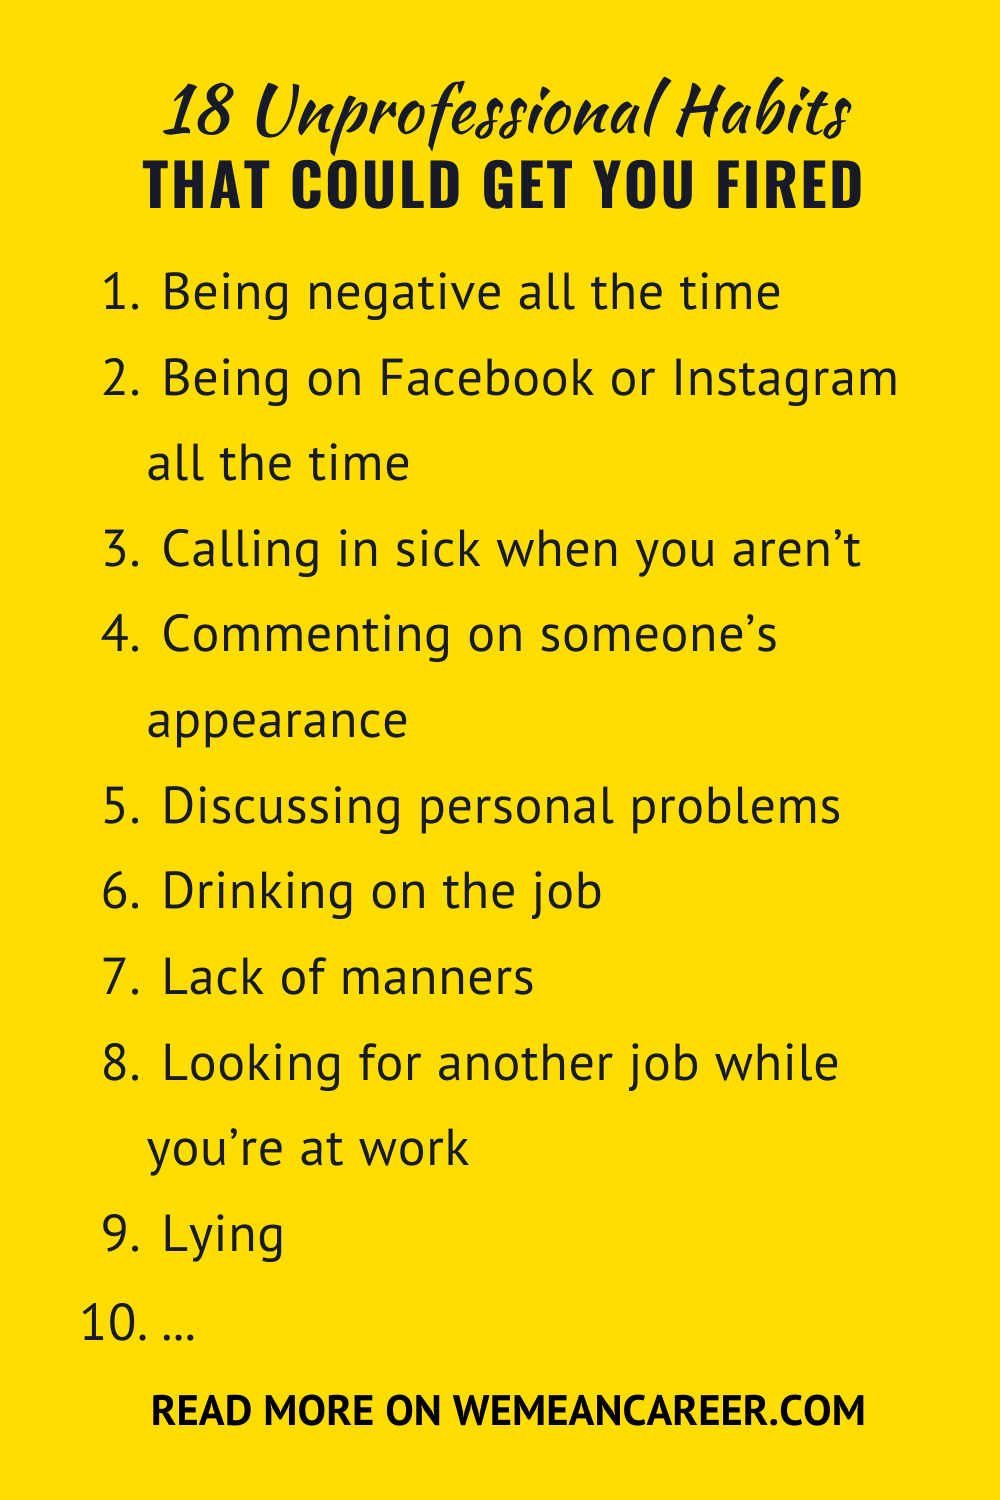 18 Habits That Could Get You Fired Job Search Tips Your Fired You Got This